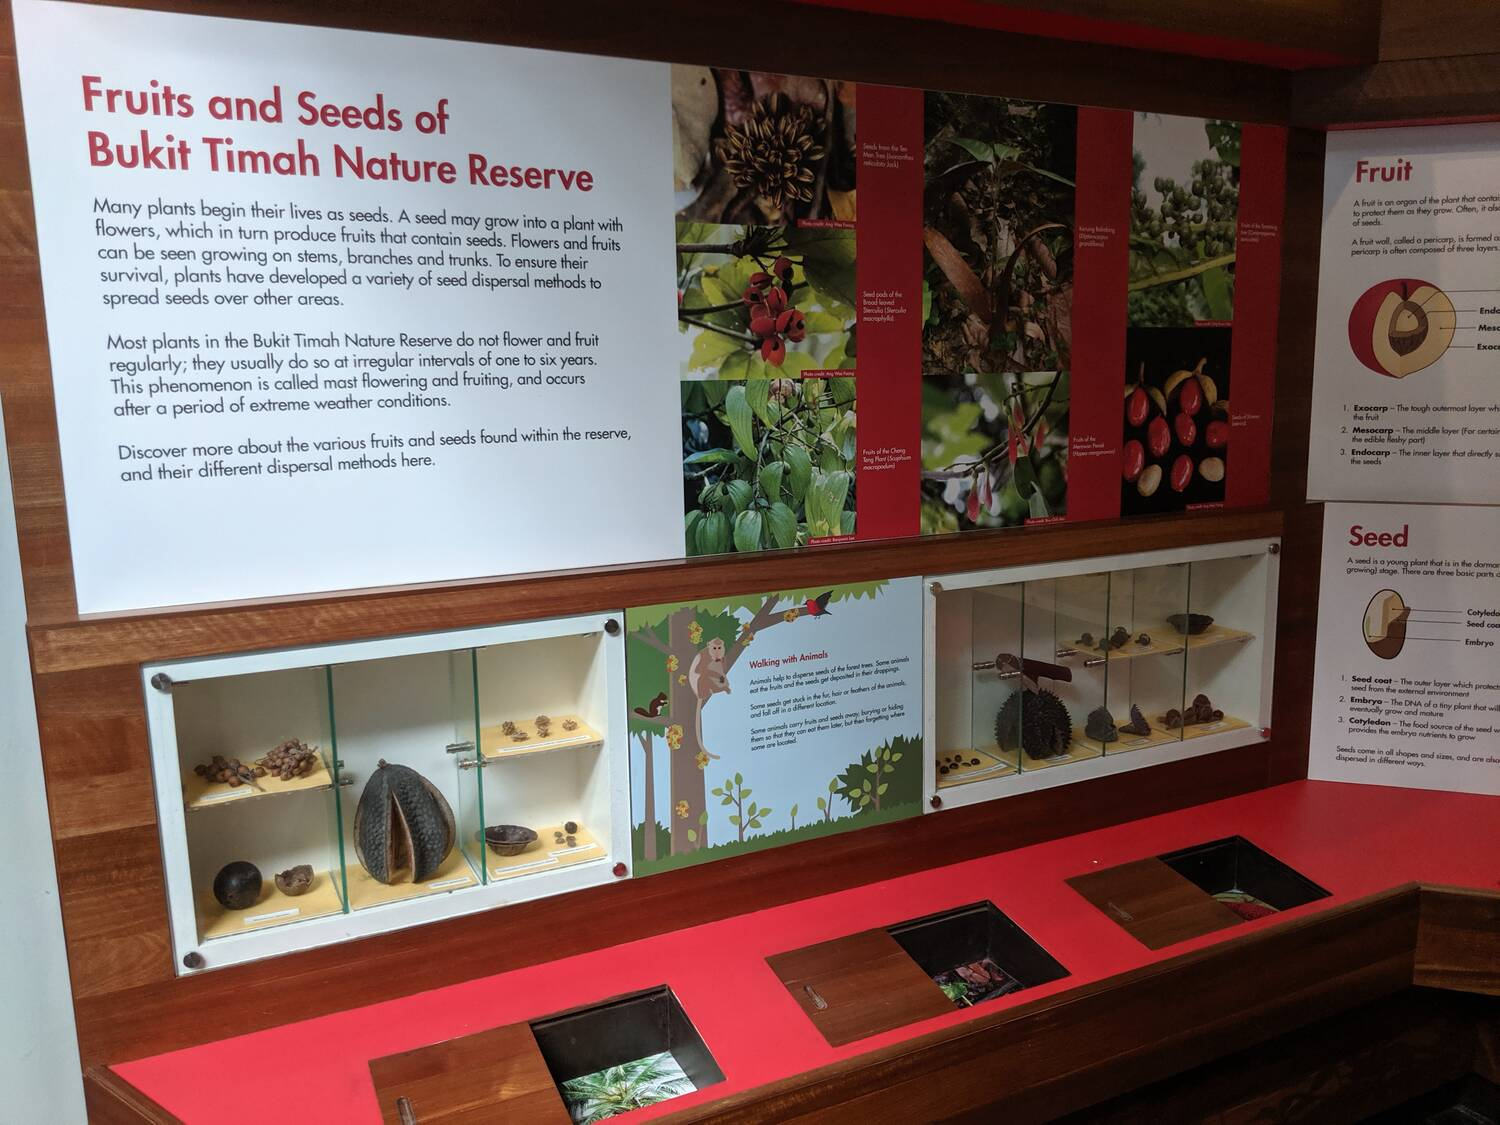 Fruits and Seeds of Bukit Timah Nature Reserve